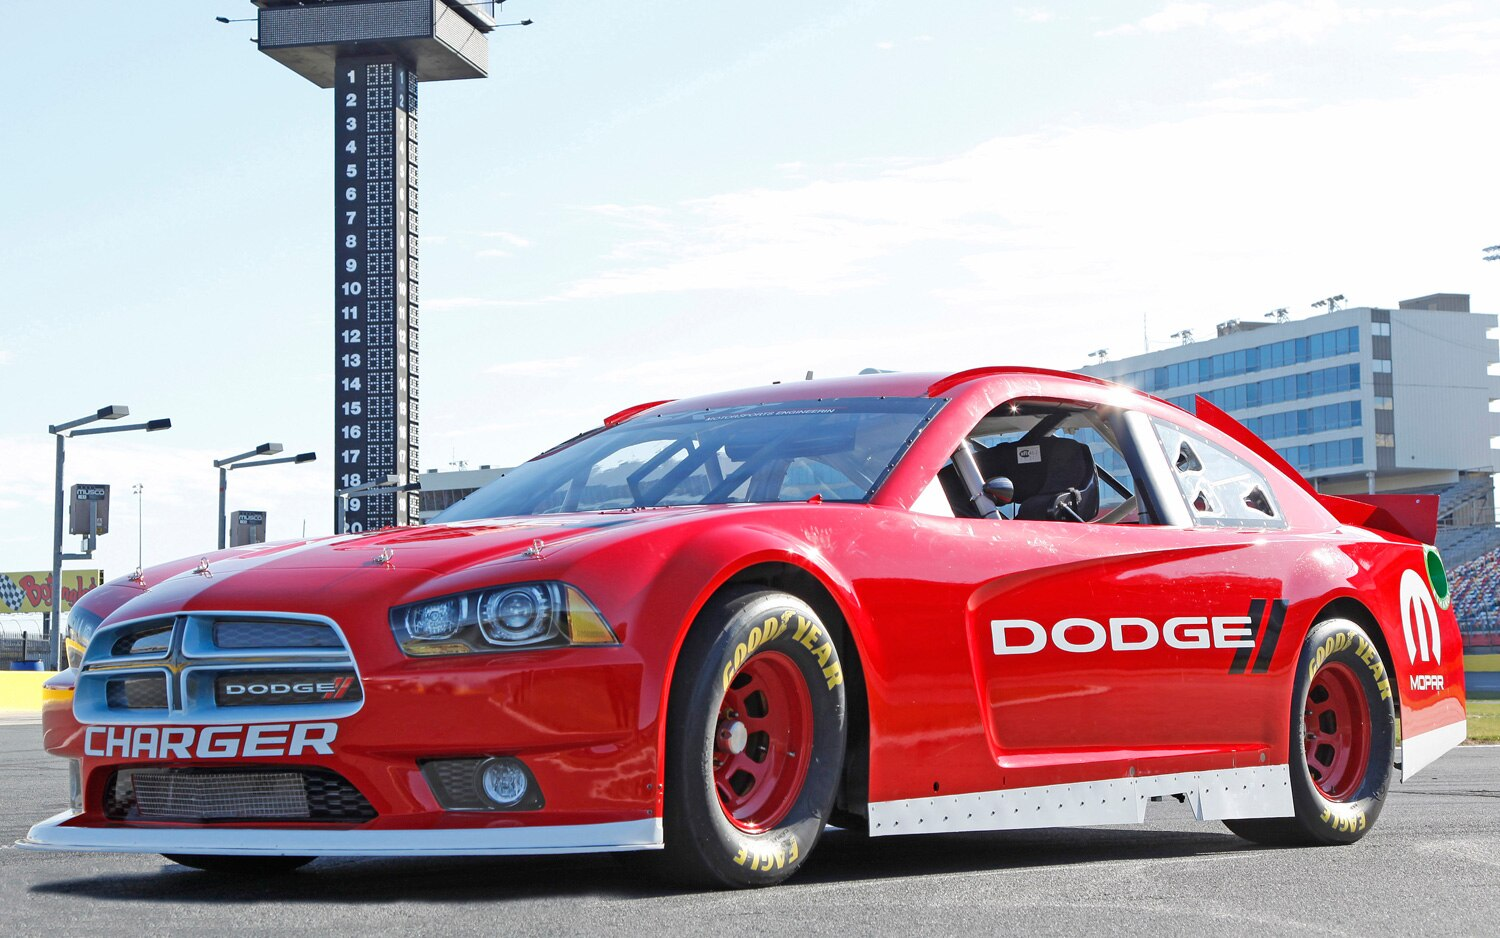 2013 Dodge Charger NASCAR Sprint Cup Car Front Three Quarters View1